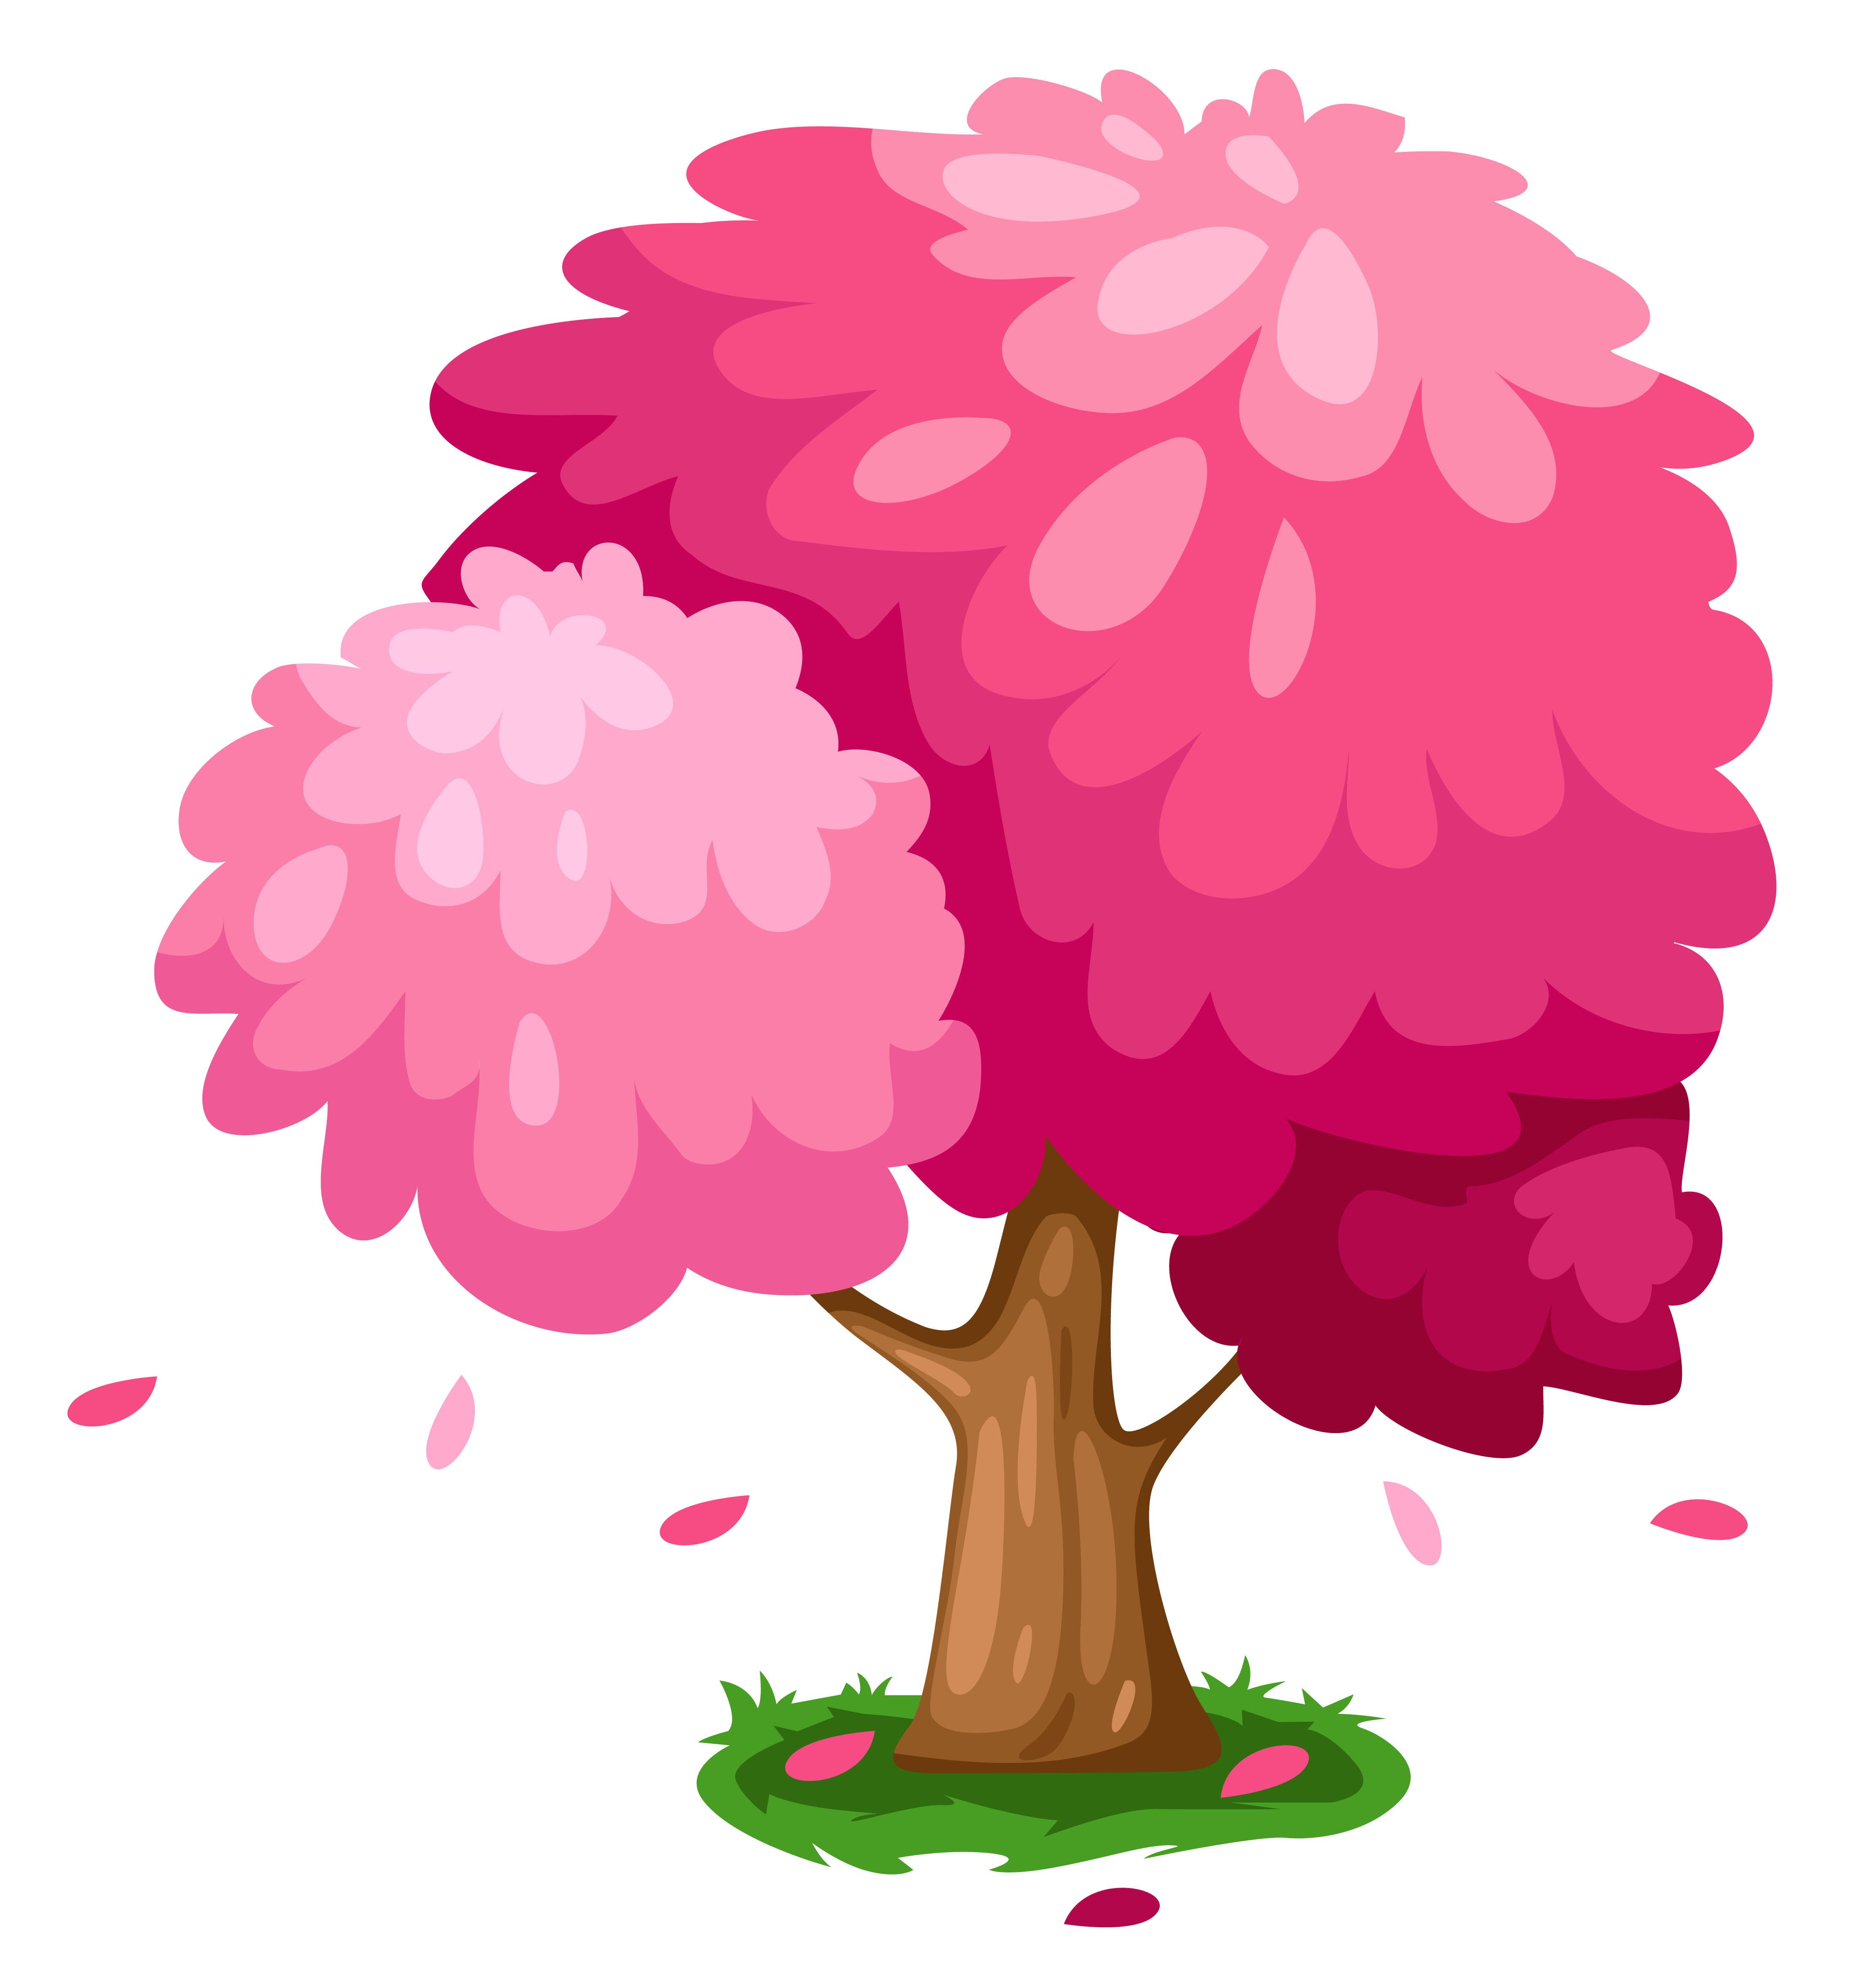 Summer Tree Clipart | Clipart library - Free Clipart Images